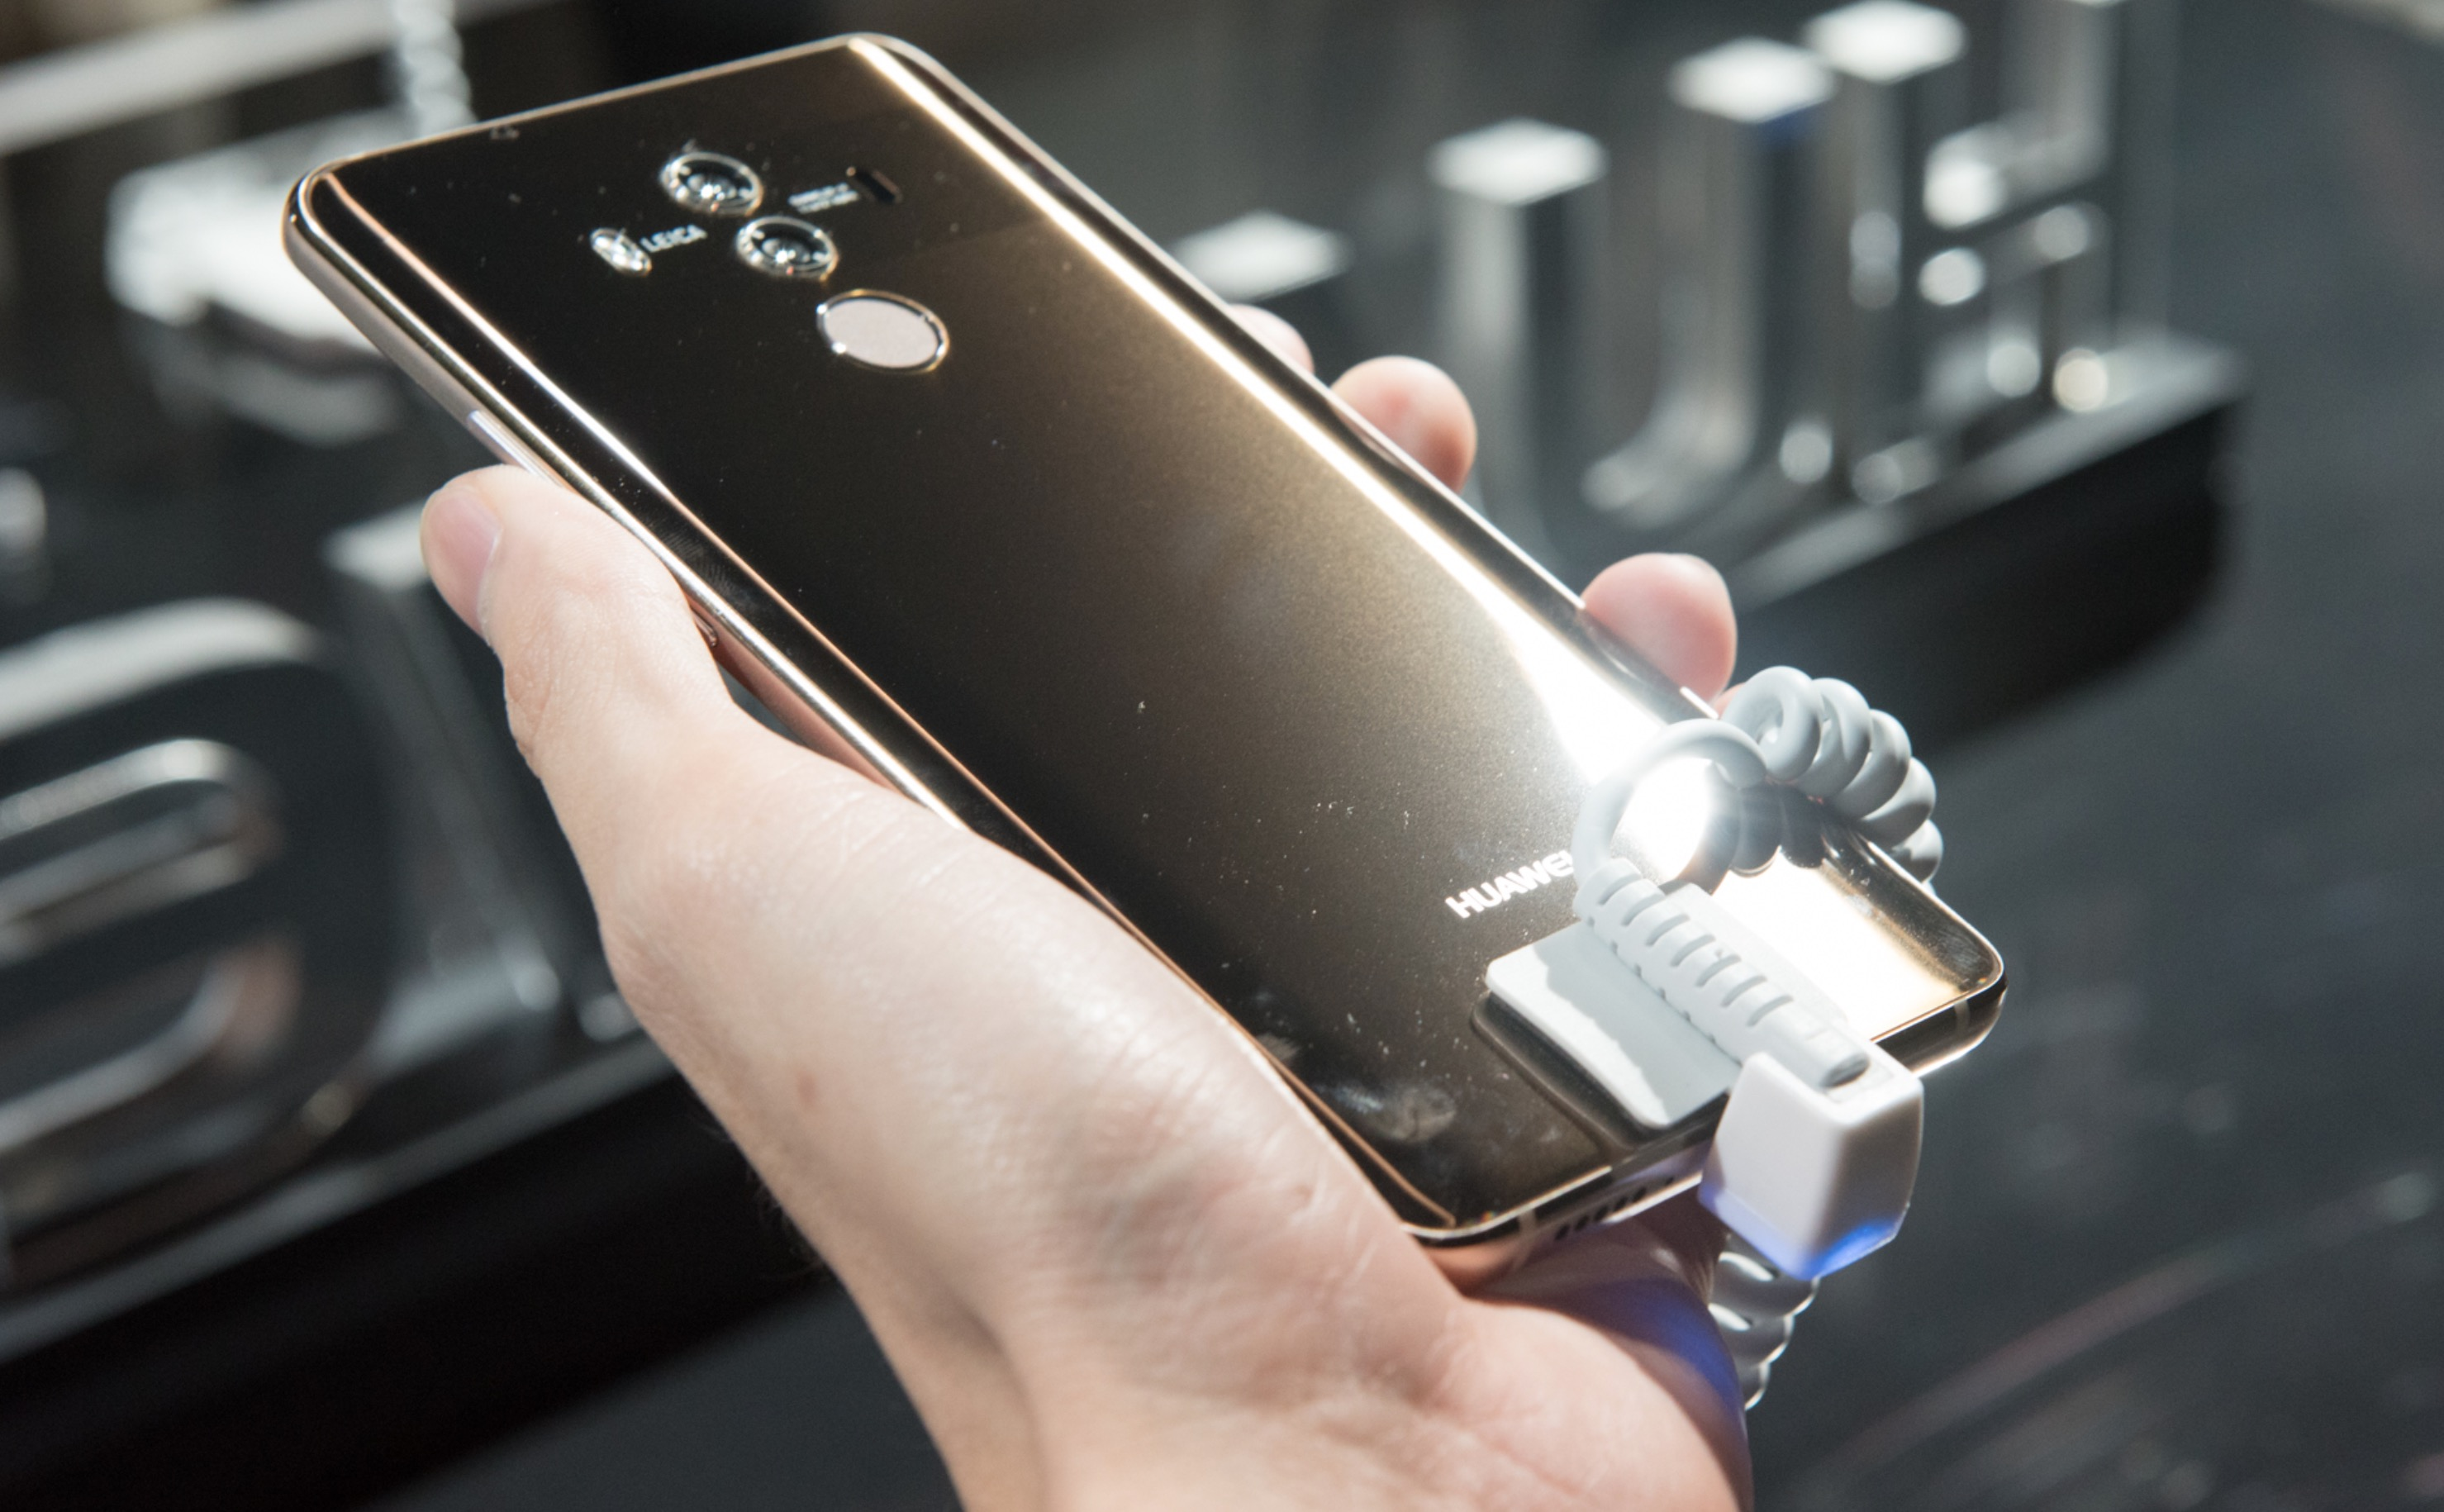 Huawei Mate 10 Pro schermo OLED